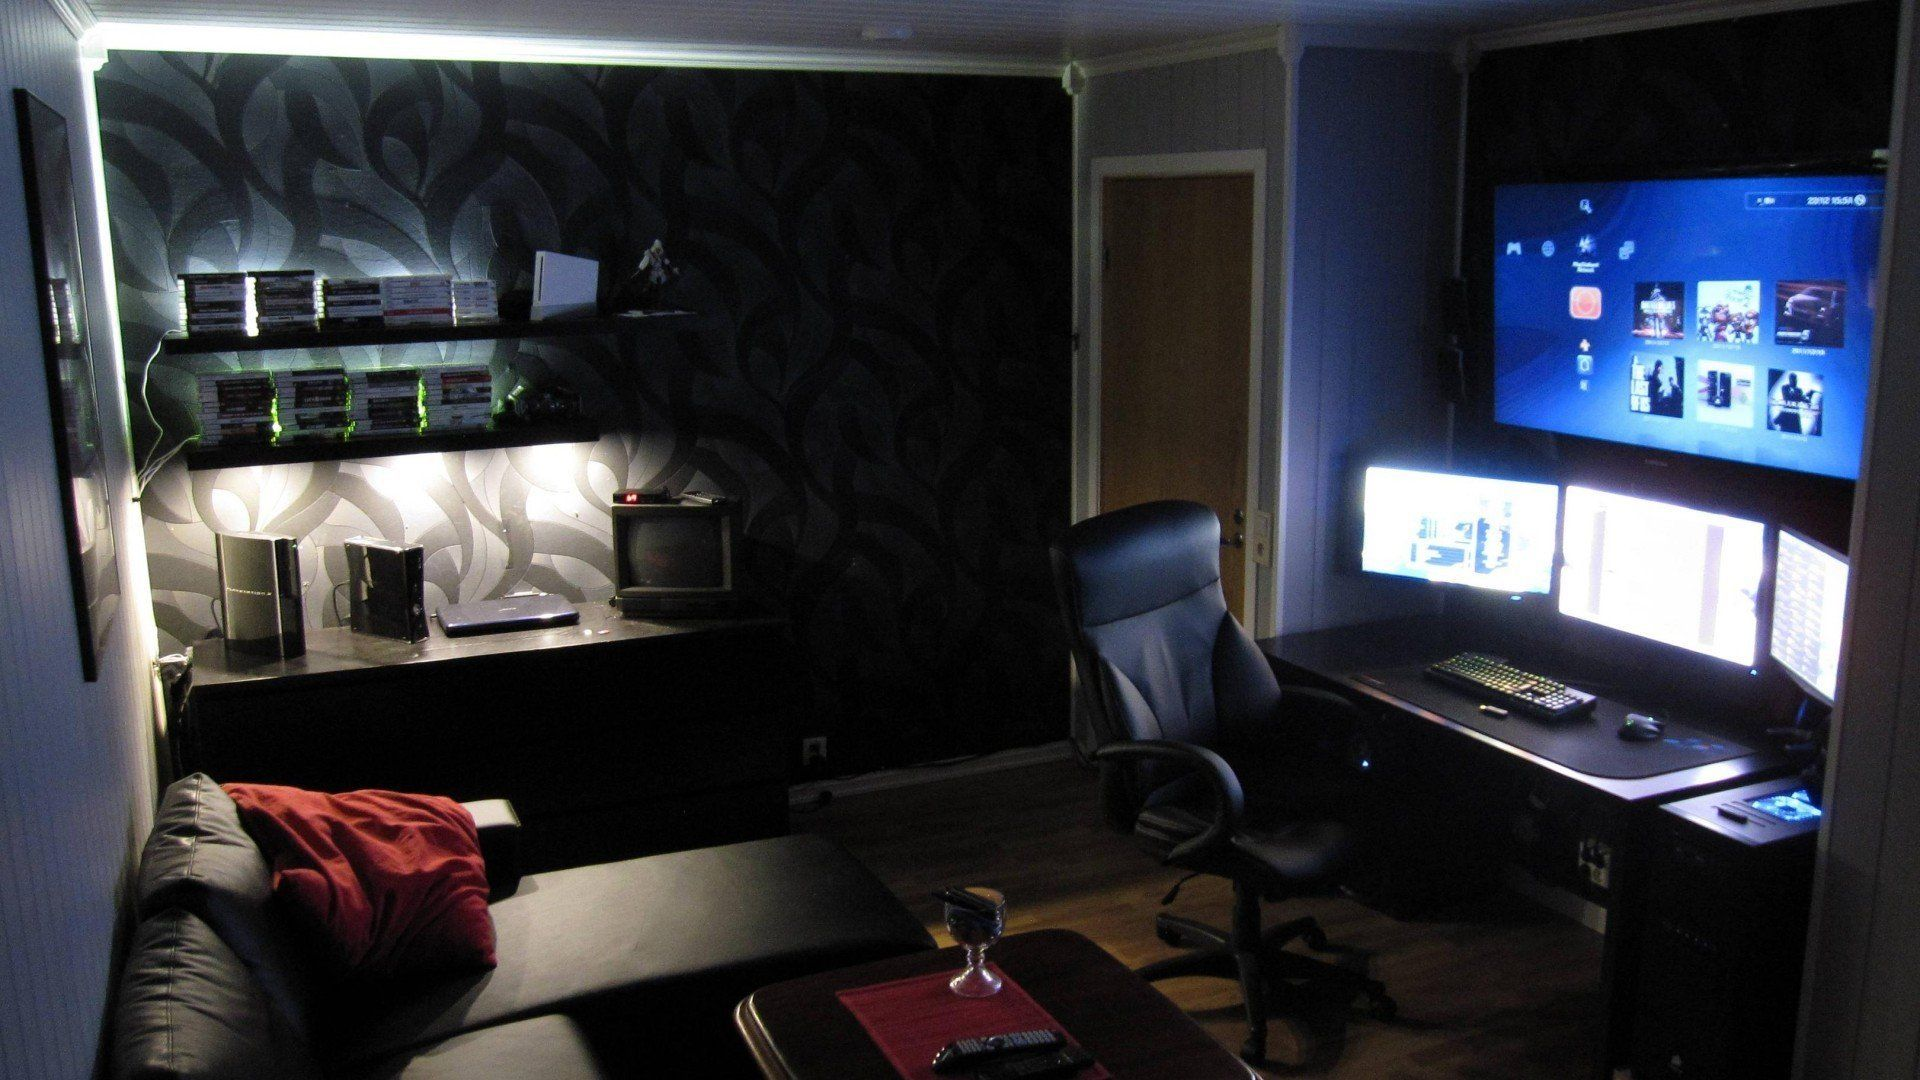 This Is What My Gaming Pc Room Is Missing Due To Its Being